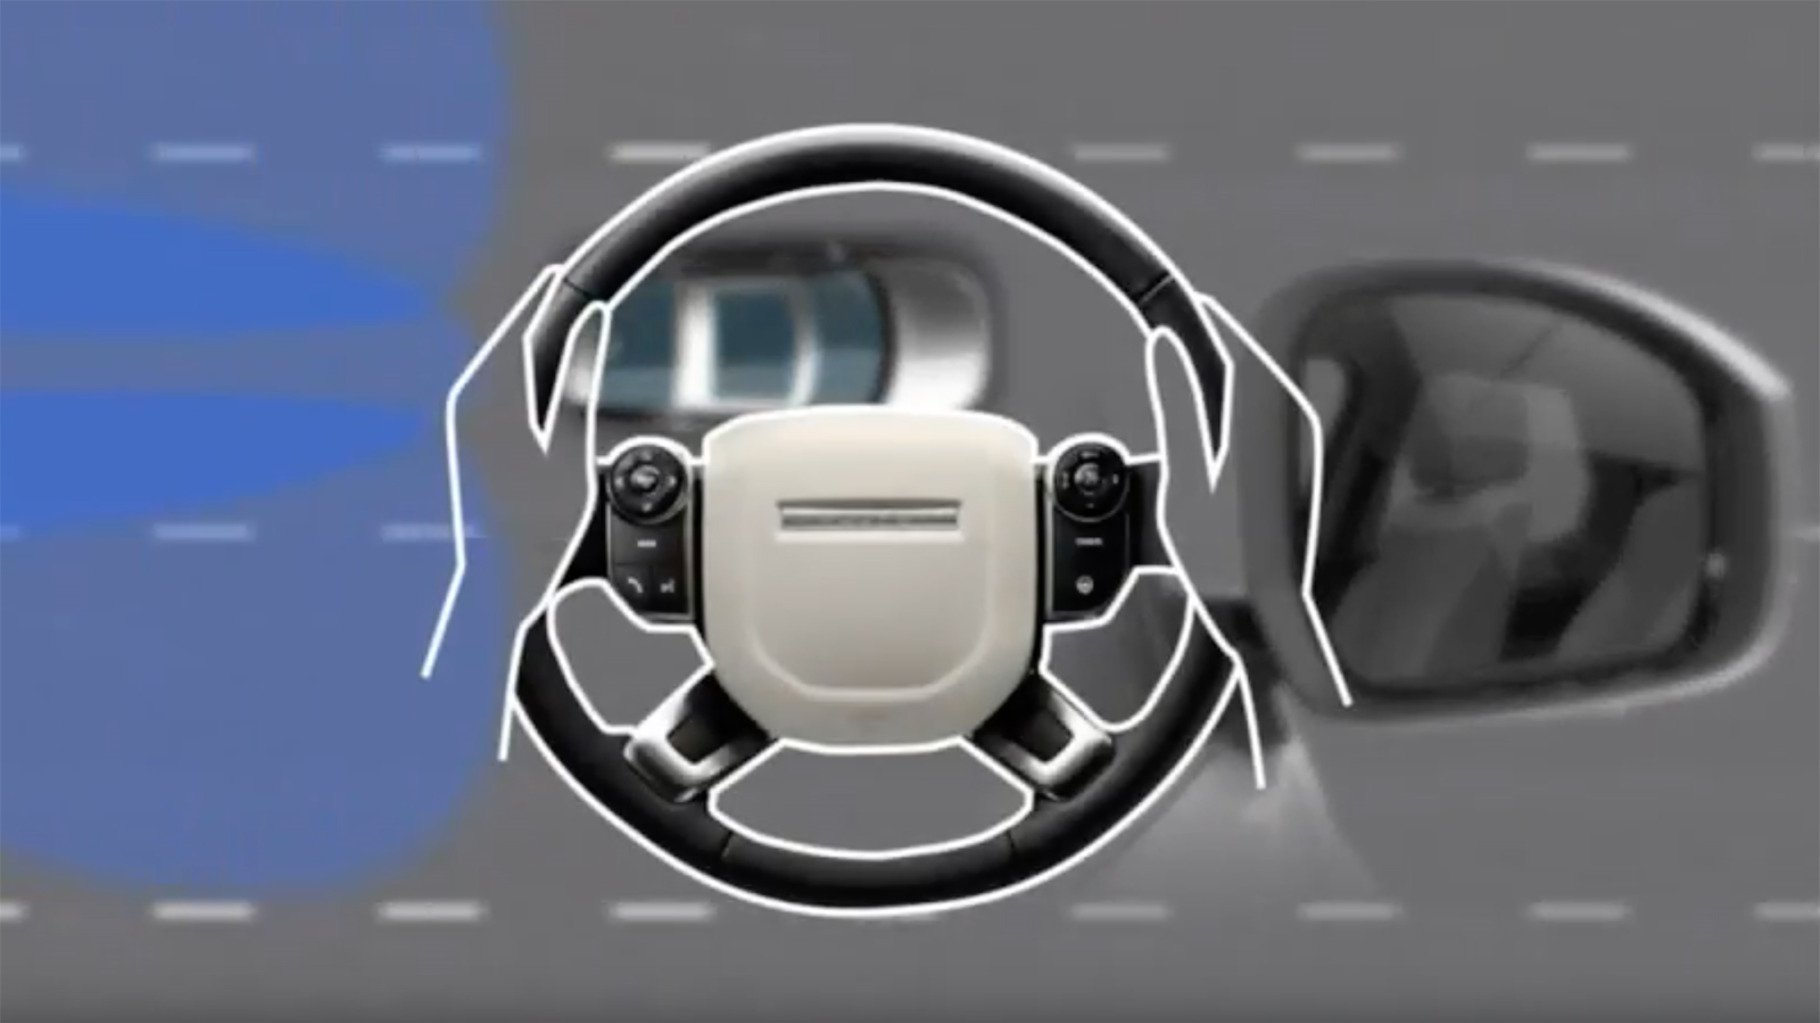 2017 Discovery | Blind Spot Monitor